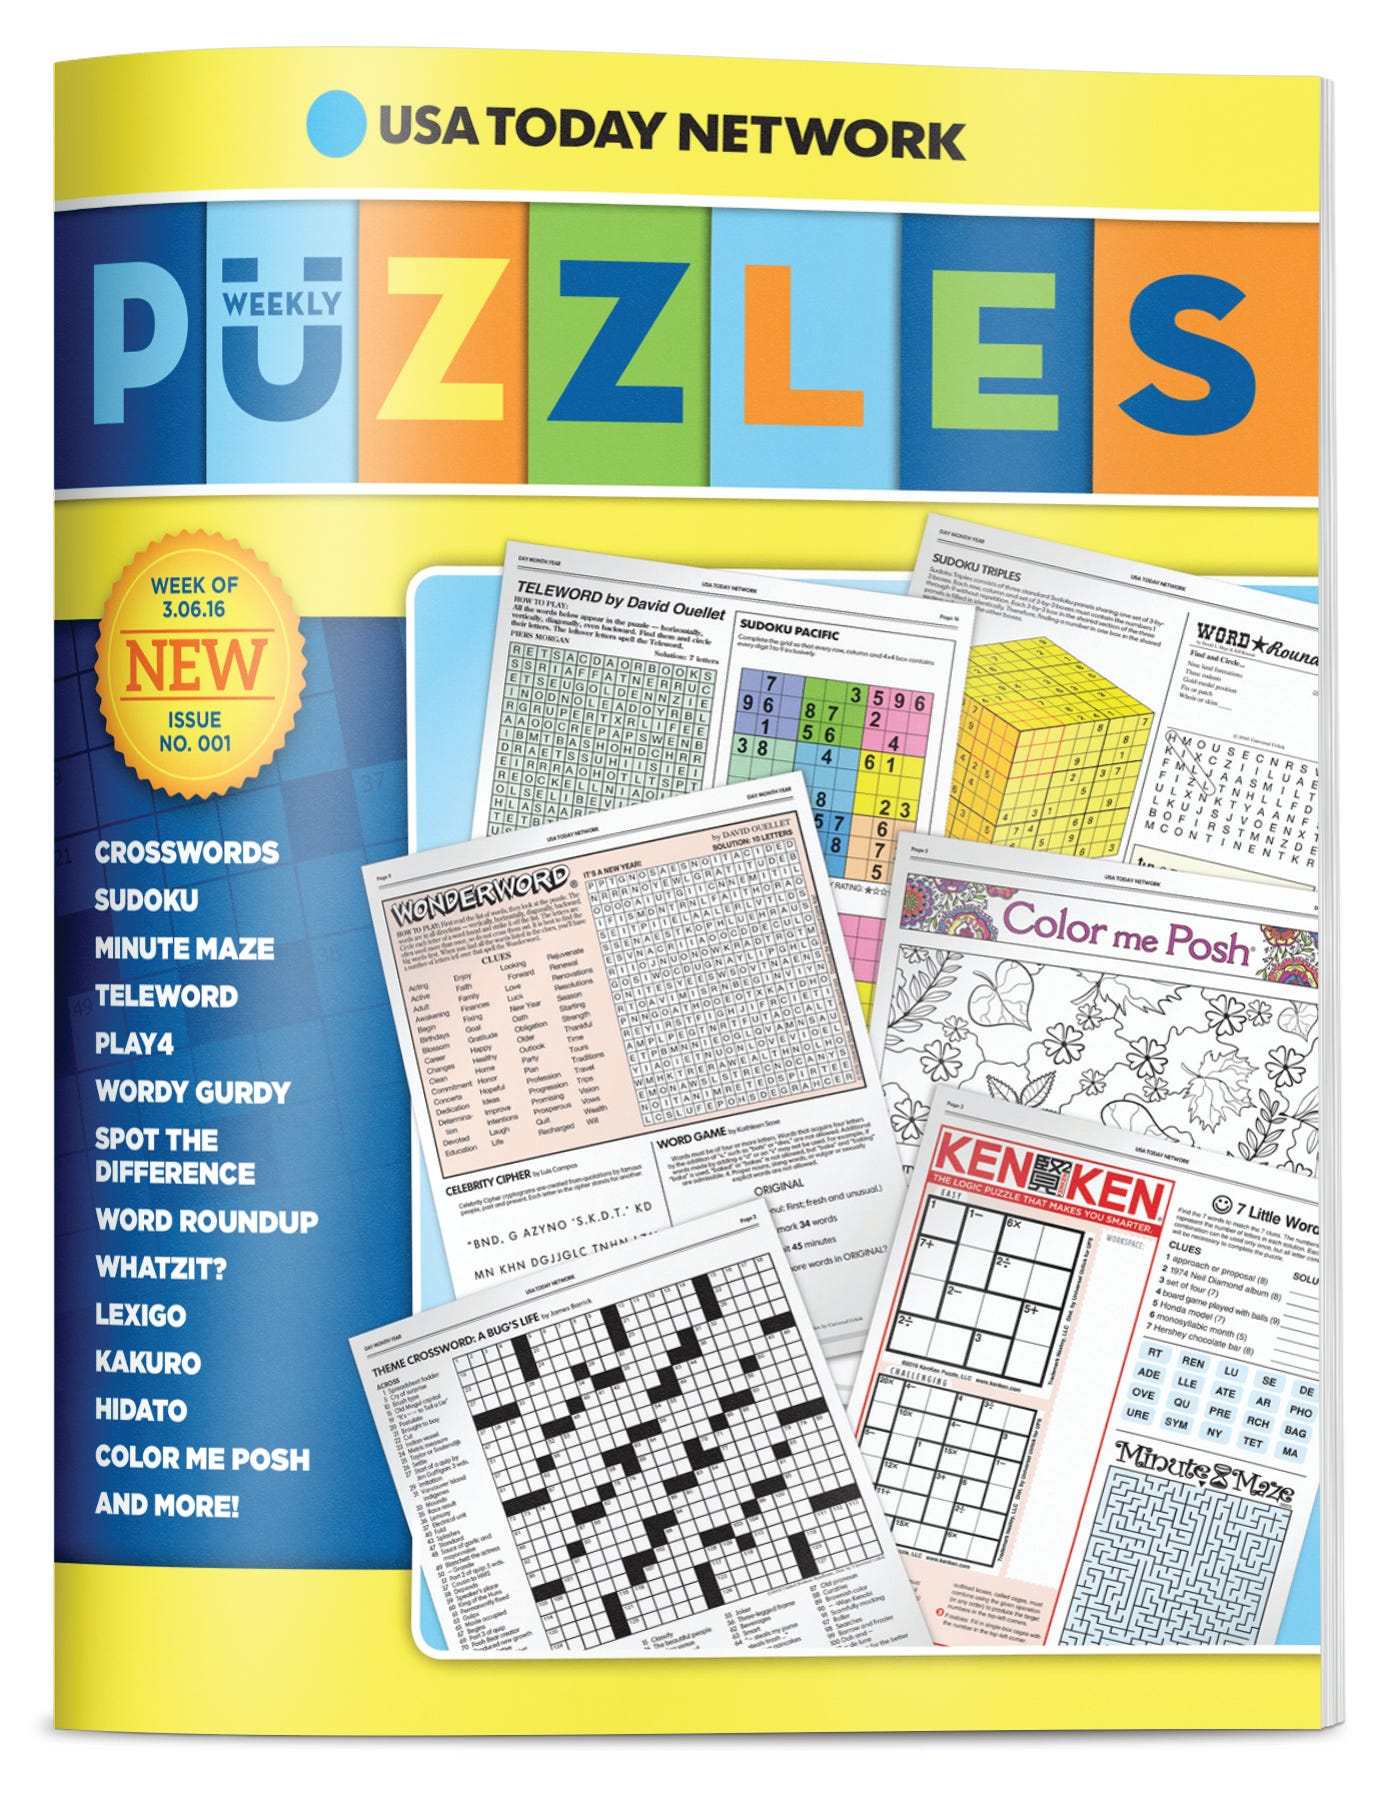 Indystar Crossword Puzzles Printable Related Keywords & Suggestions - Printable Indystar Crossword Puzzles